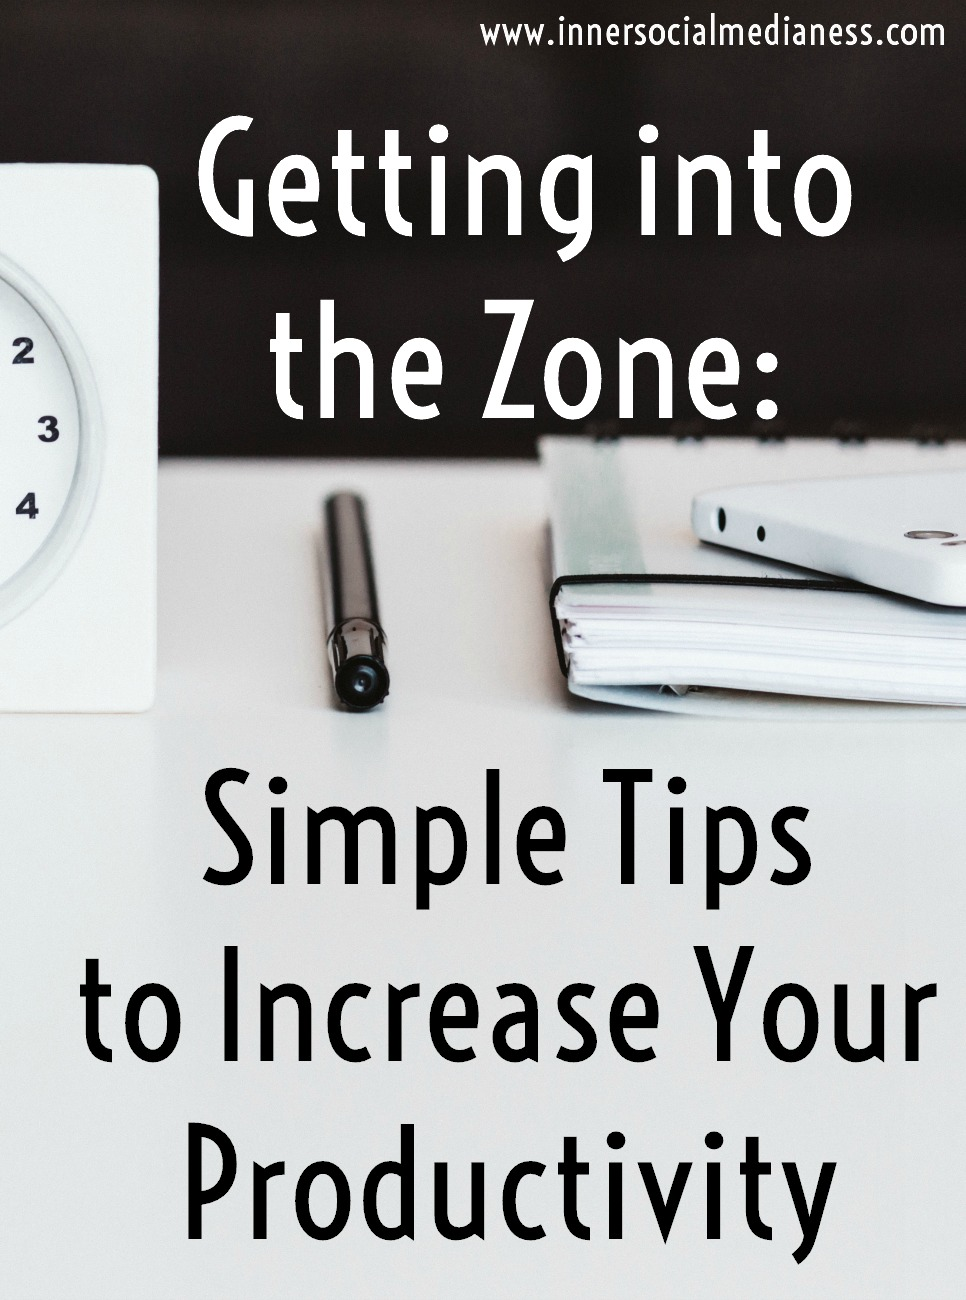 Getting into the Zone: Simple Tips to Increase Your Productivity - How can you be more productive at work? How do you get into the flow and get more done? Learn the steps to get into what they call getting into the zone where  it's not too hard, it's not too easy. It's just right.